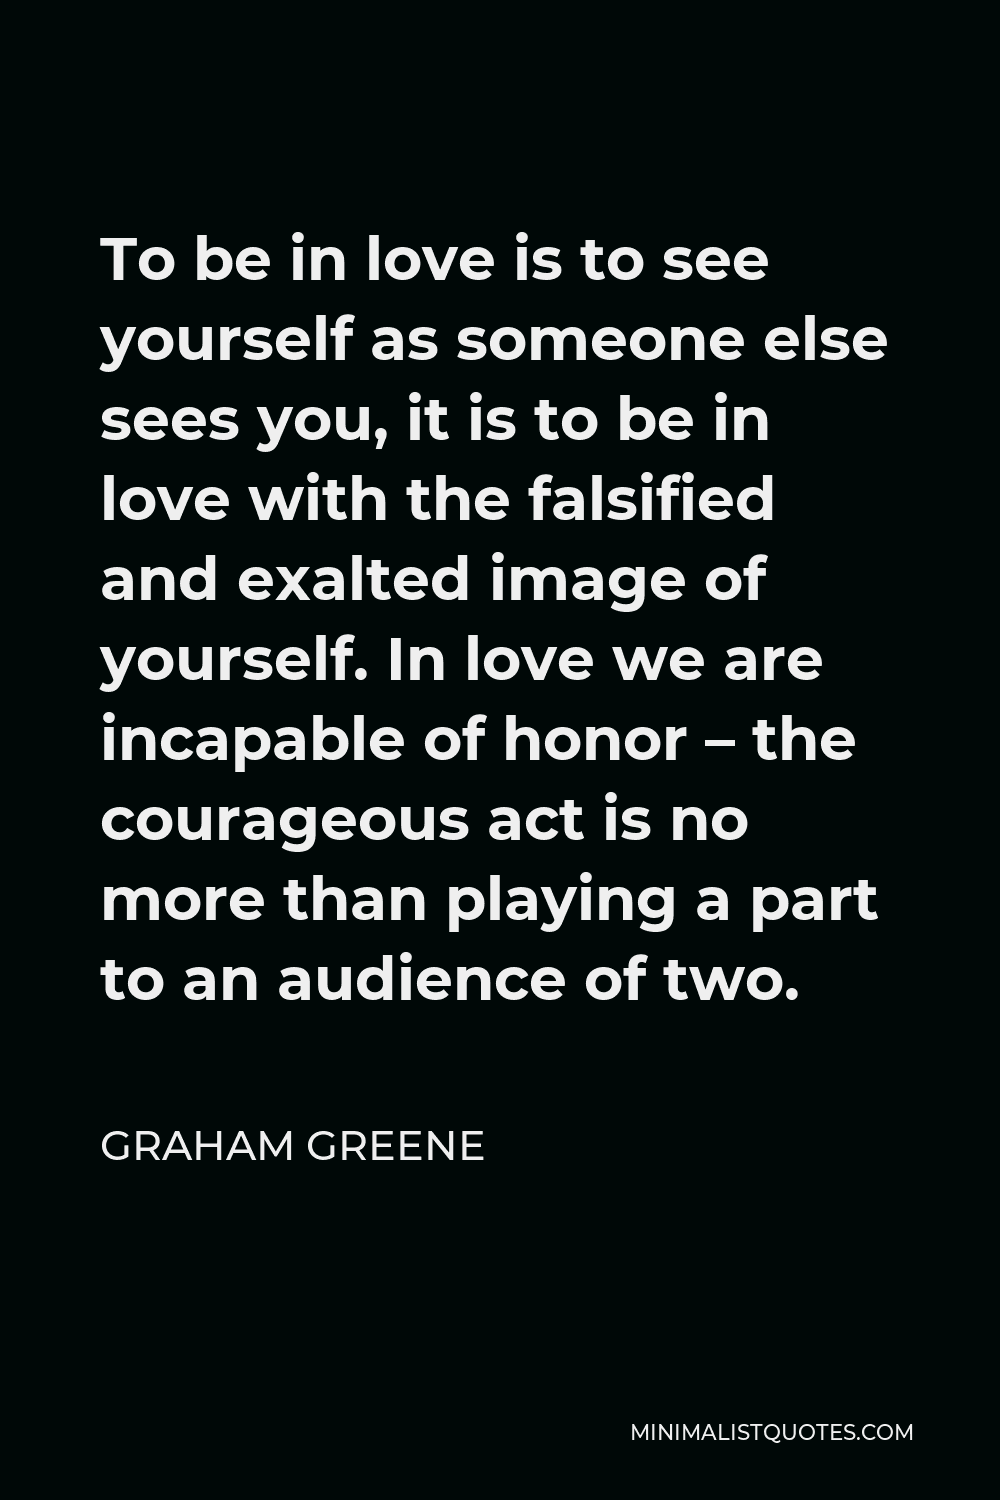 Graham Greene Quote - To be in love is to see yourself as someone else sees you, it is to be in love with the falsified and exalted image of yourself. In love we are incapable of honor – the courageous act is no more than playing a part to an audience of two.